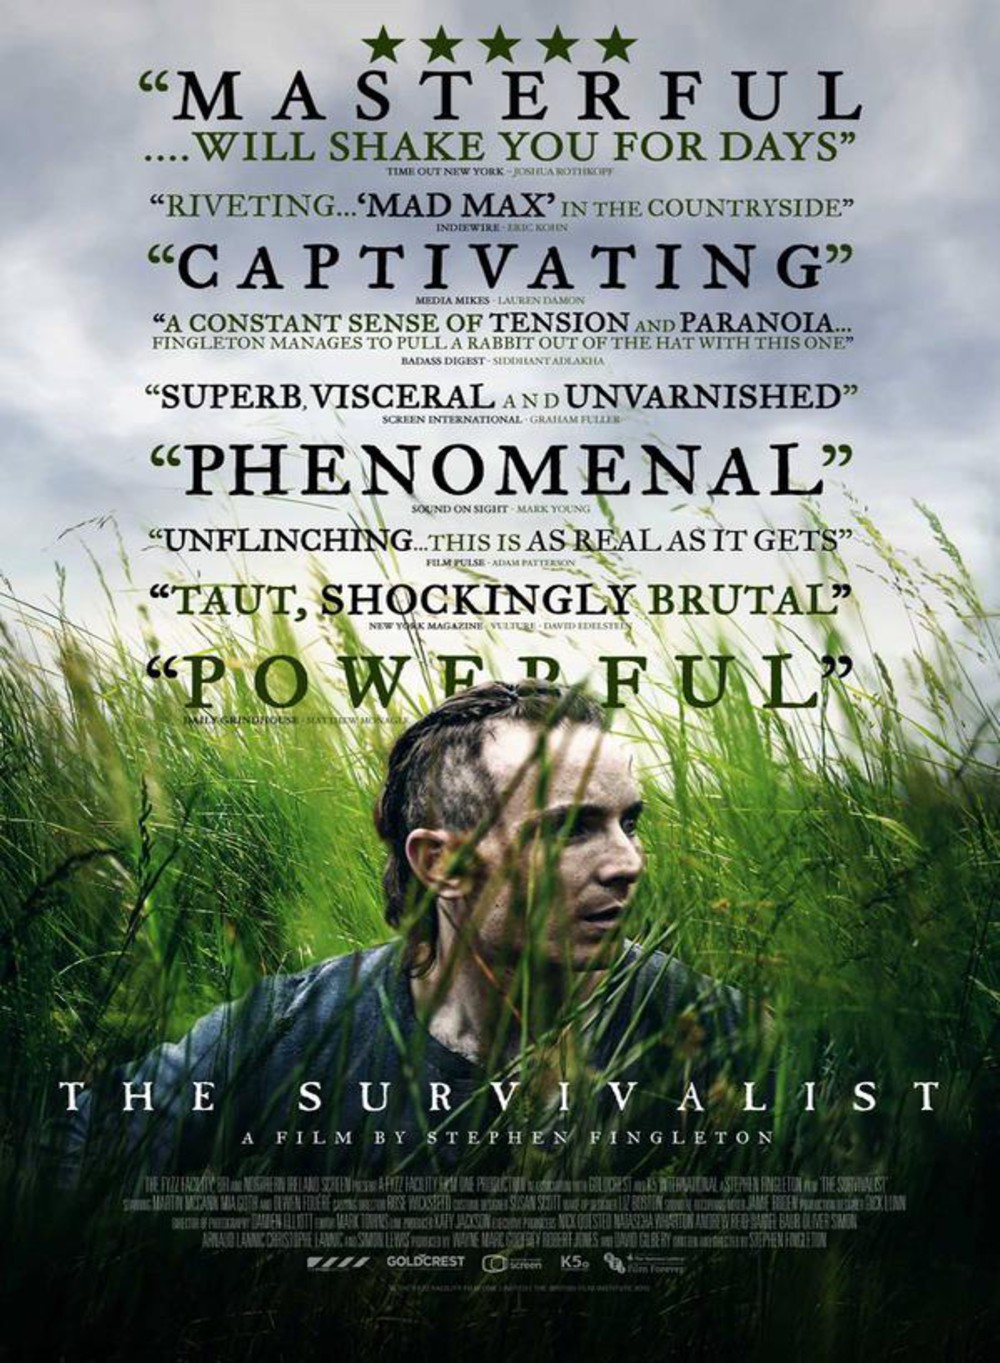 The Survivalist film review: end of days